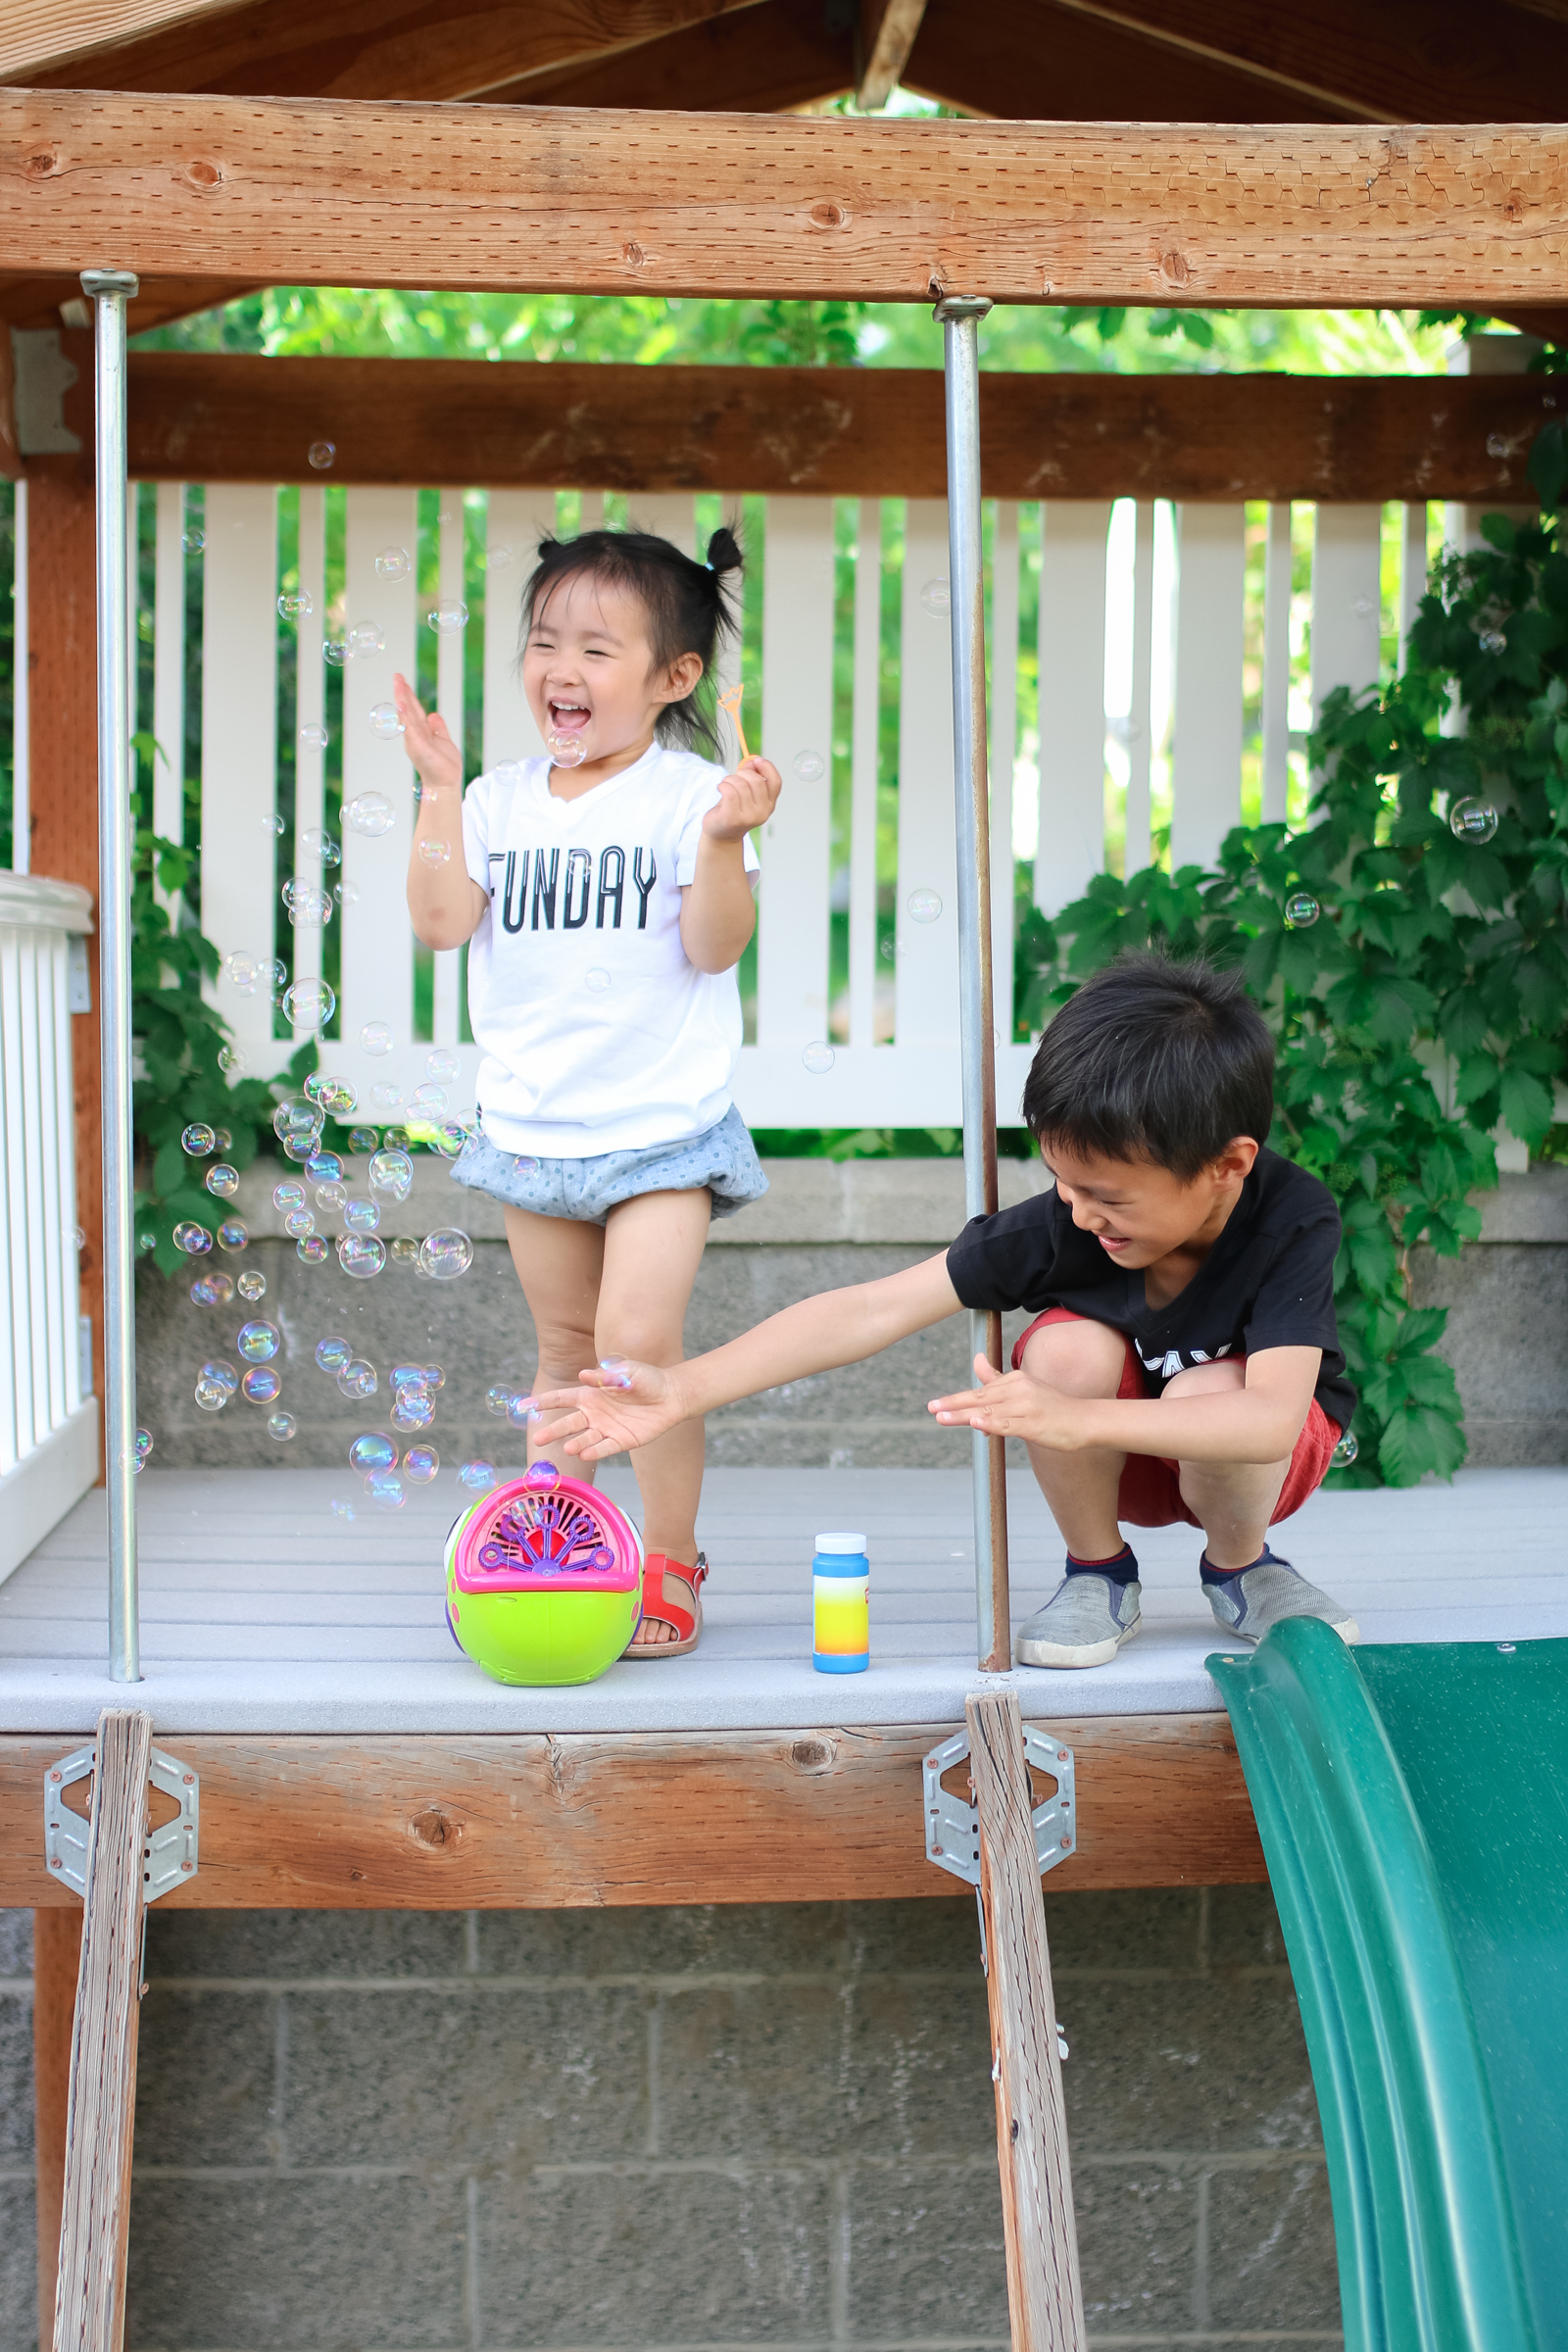 9 Super Fun Summer Activities For Kids To Do in Your Own Backyard by popular blogger Sandy A La Mode